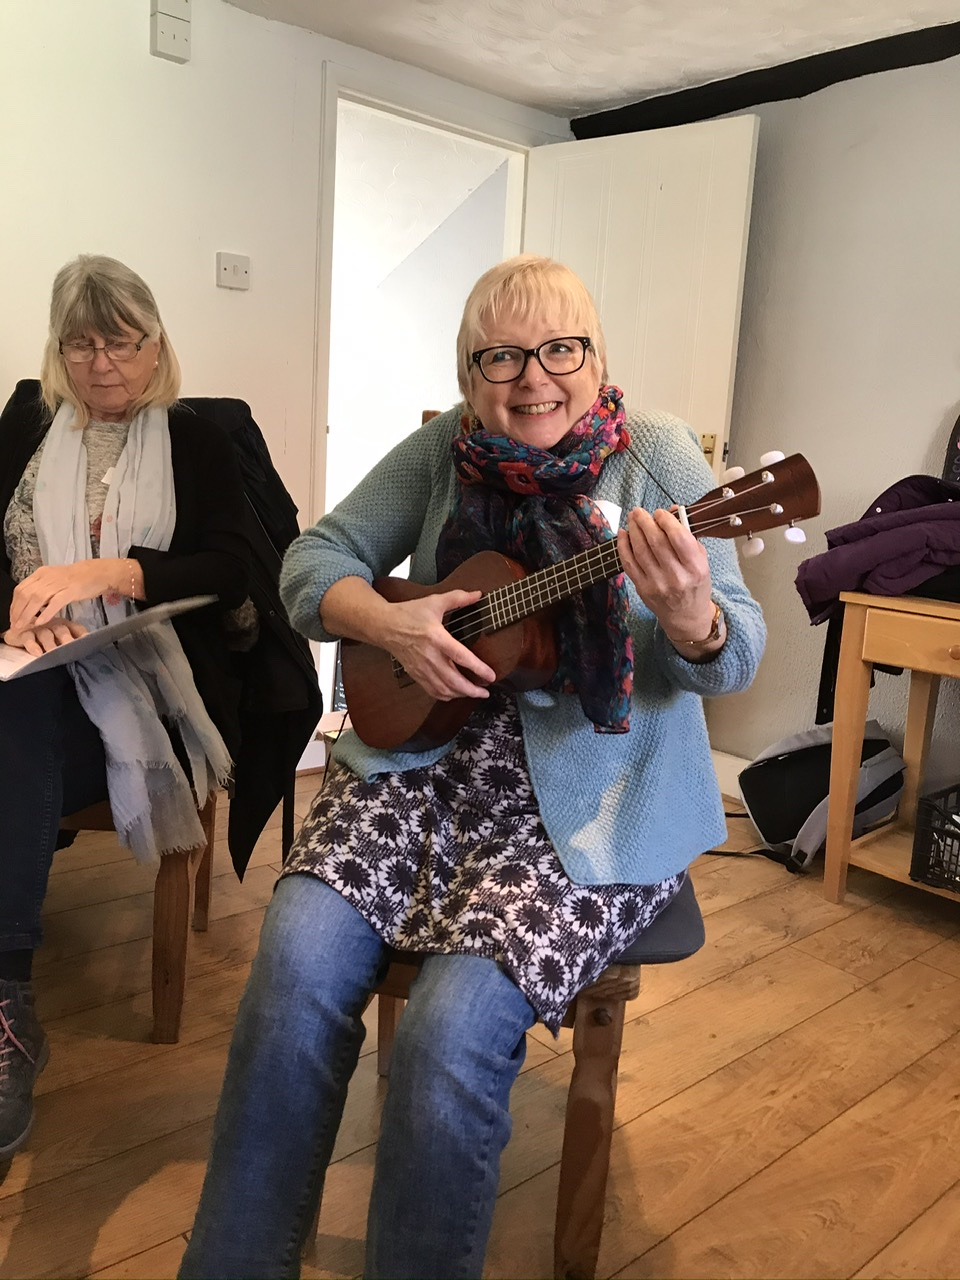 A photo from one of the taster workshops. For this workshop, the group were trying singing with singing teacher, Sally Rose. In this photo Sally is grinning while sat on a chair with a little guitar.